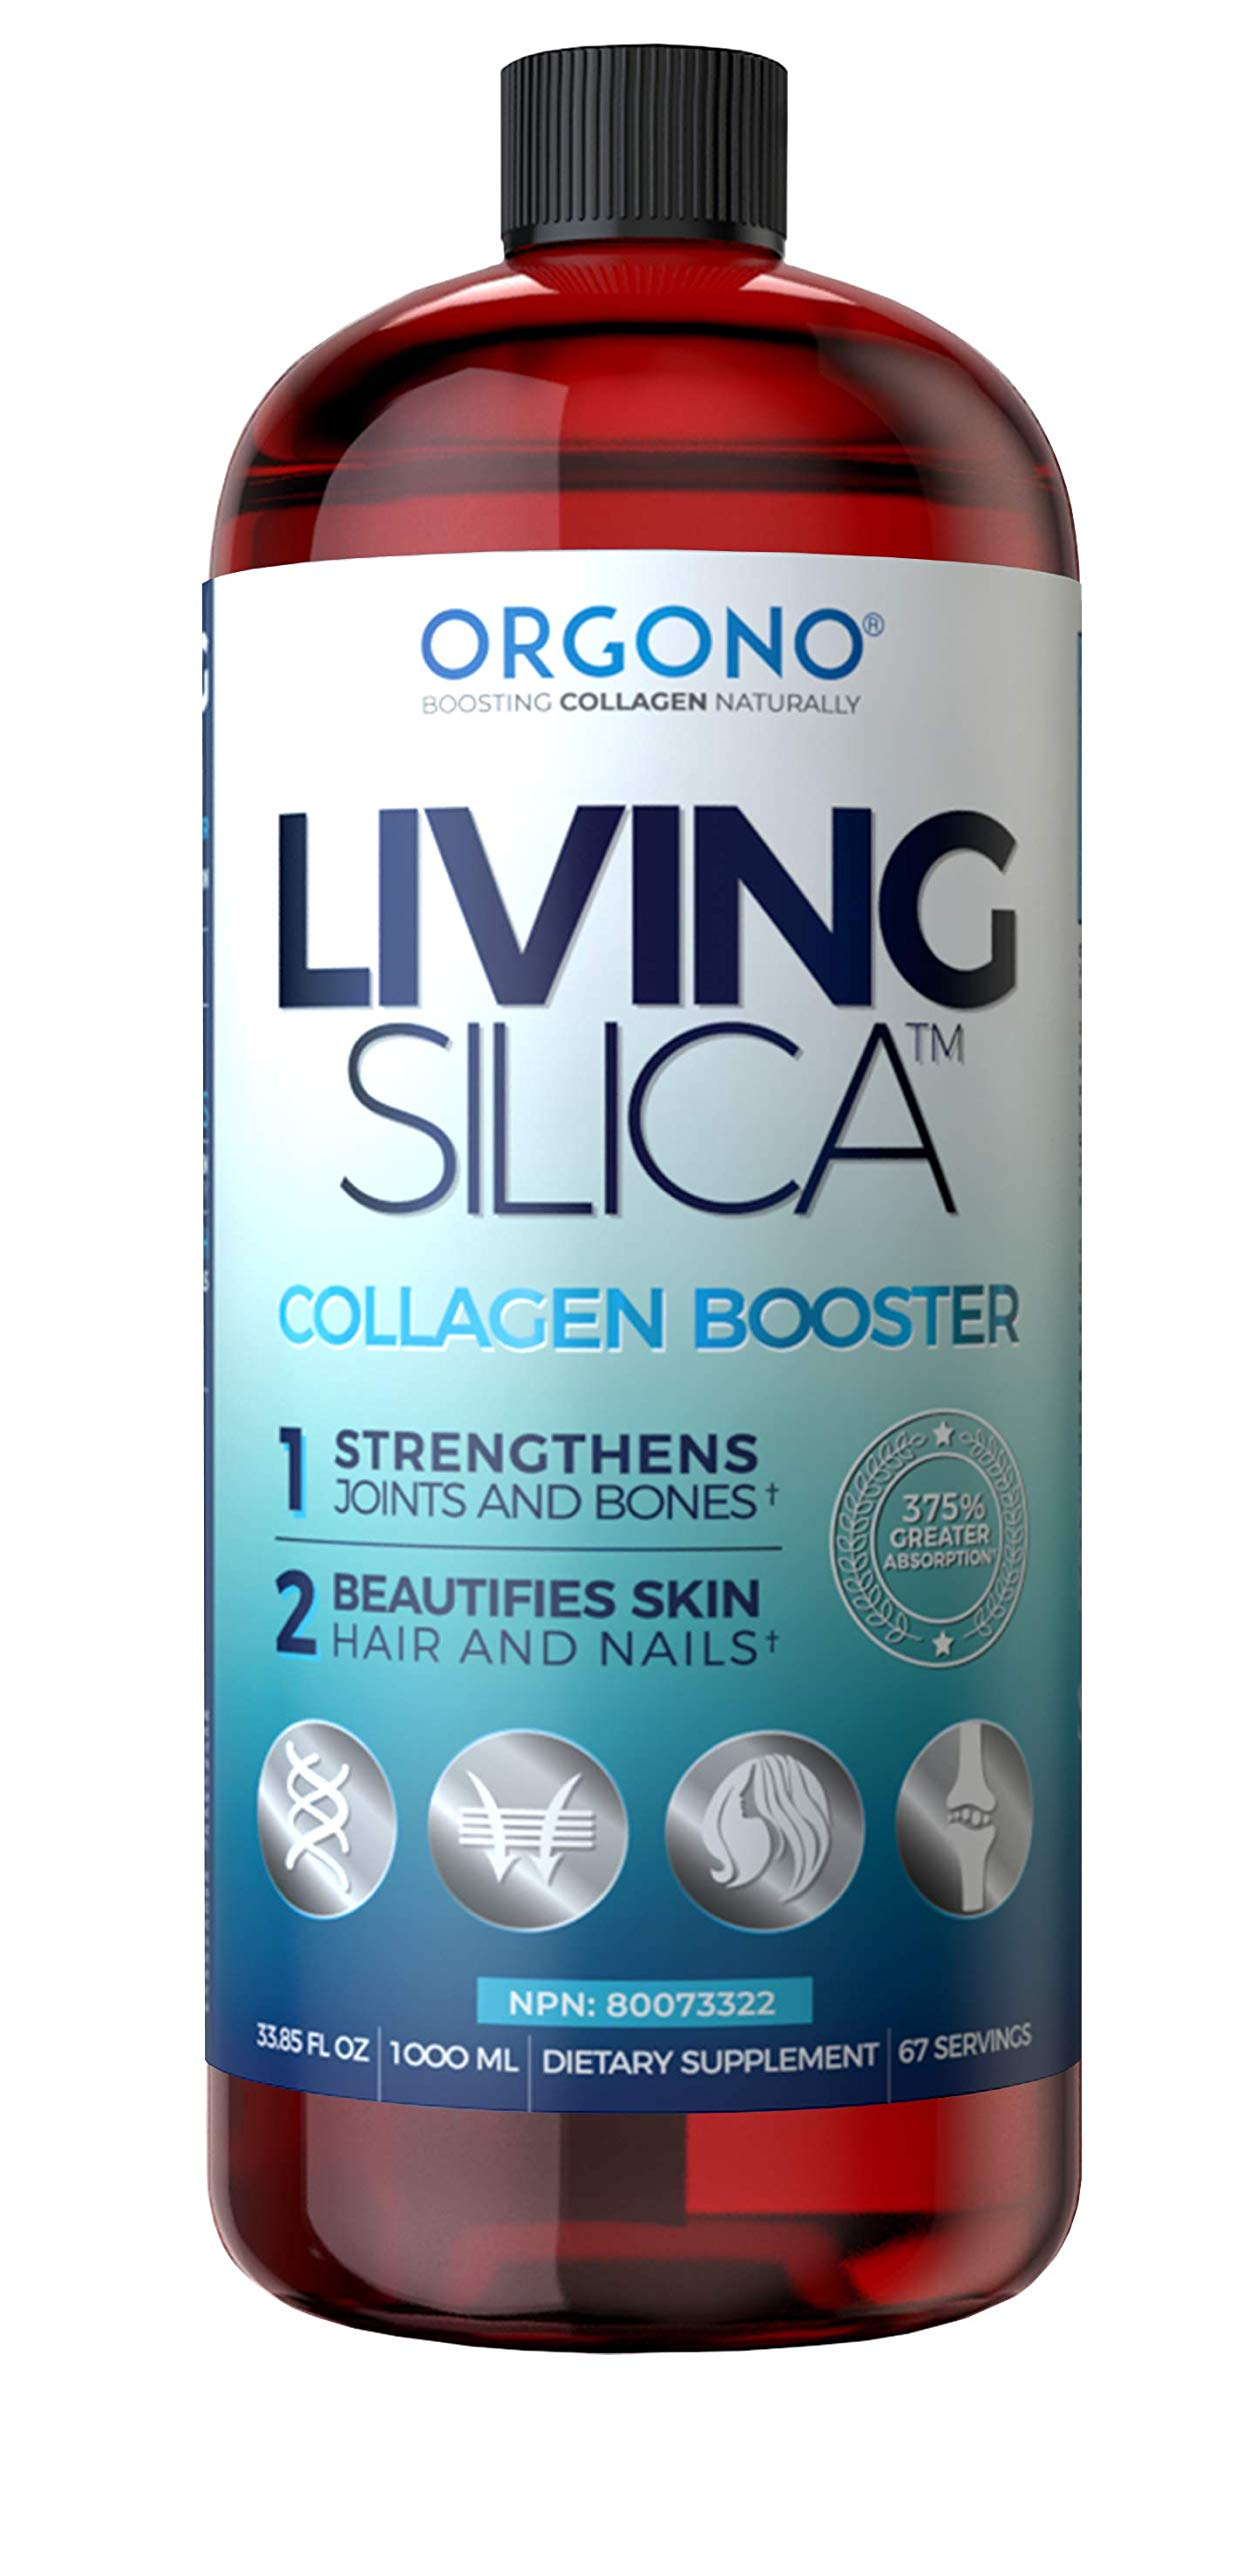 Living Silica, Collagen Booster for Bones Joints Muscles Hair Nails and Skin Double Strength (1000) by Orgono